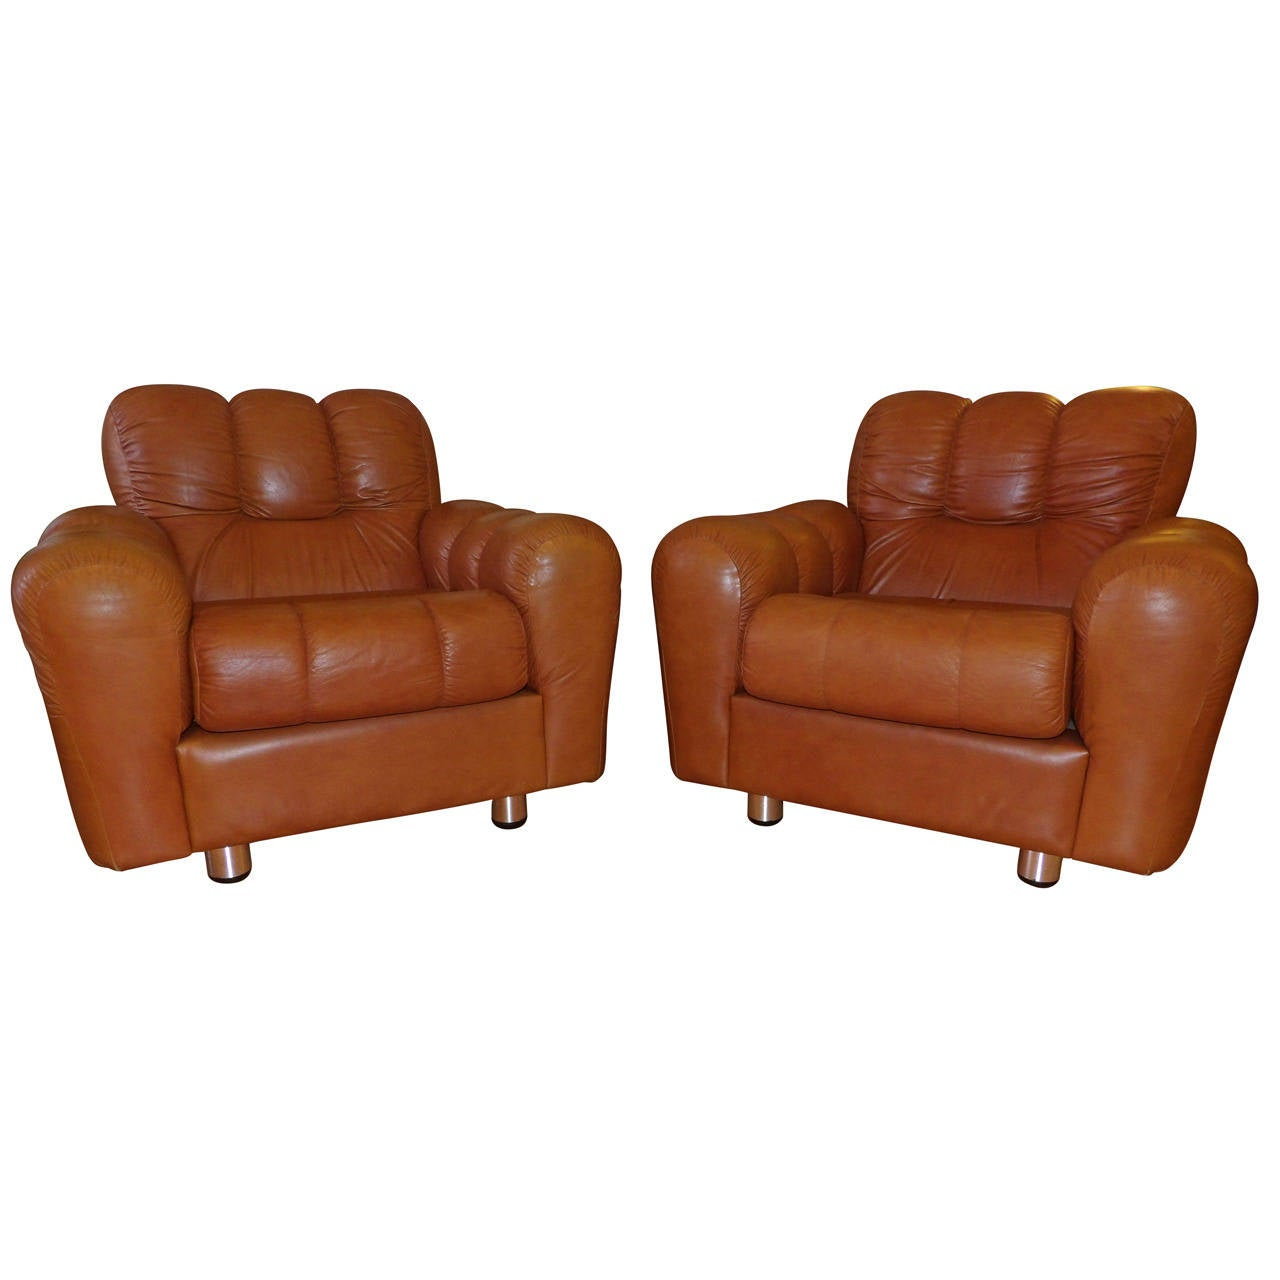 Pair of Oversized Leather Lounge Chairs at 1stdibs